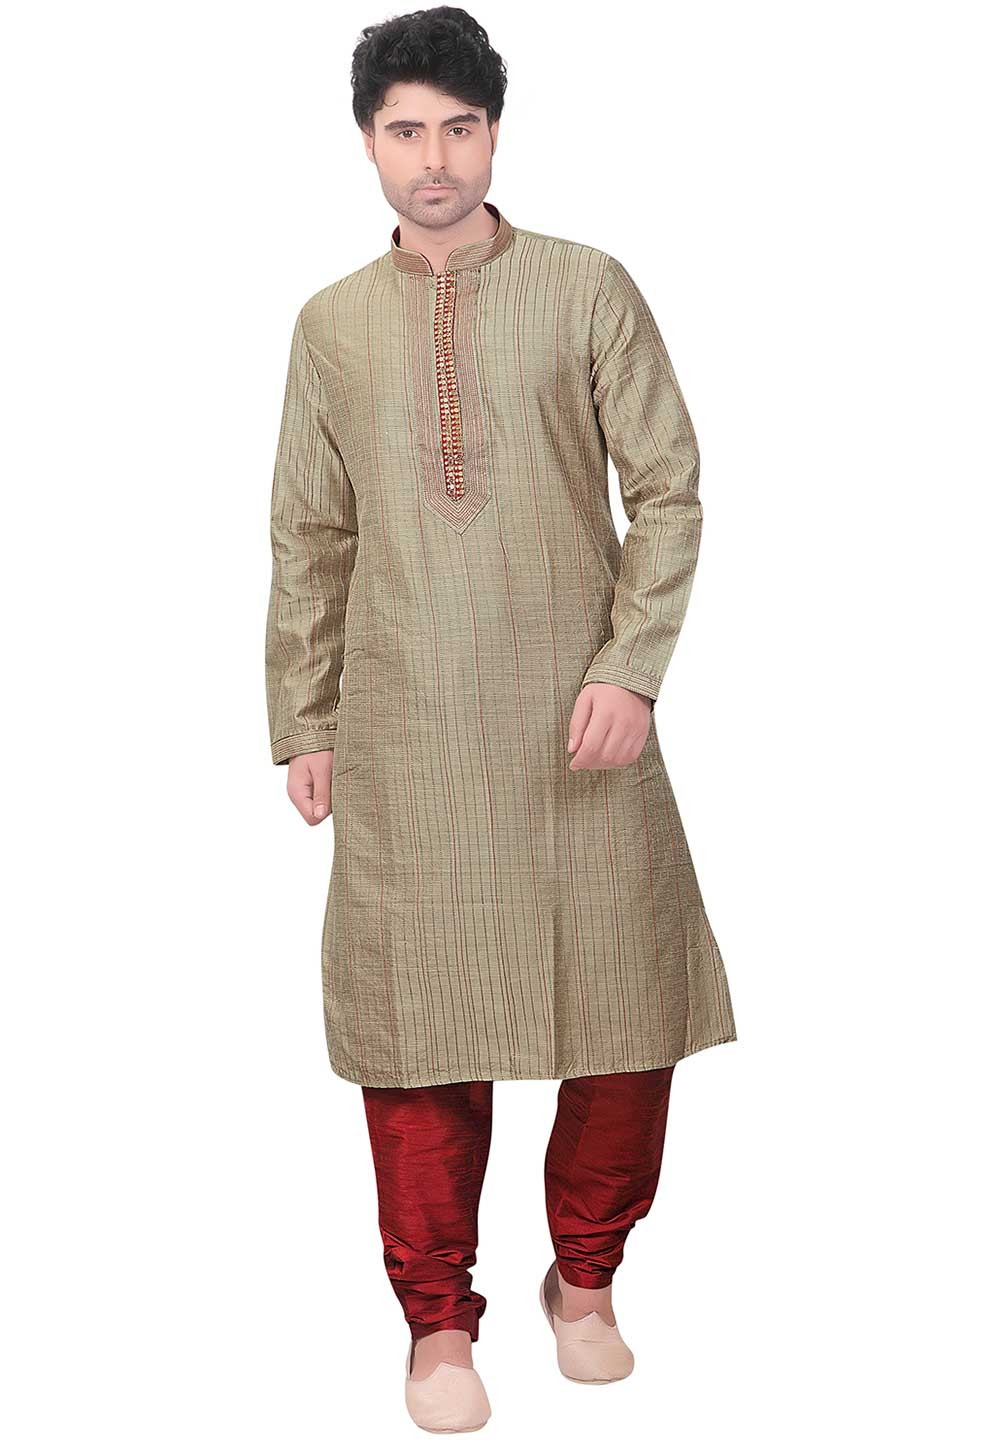 Readymade: Buy Kurta Pajama Online in Beige Colour